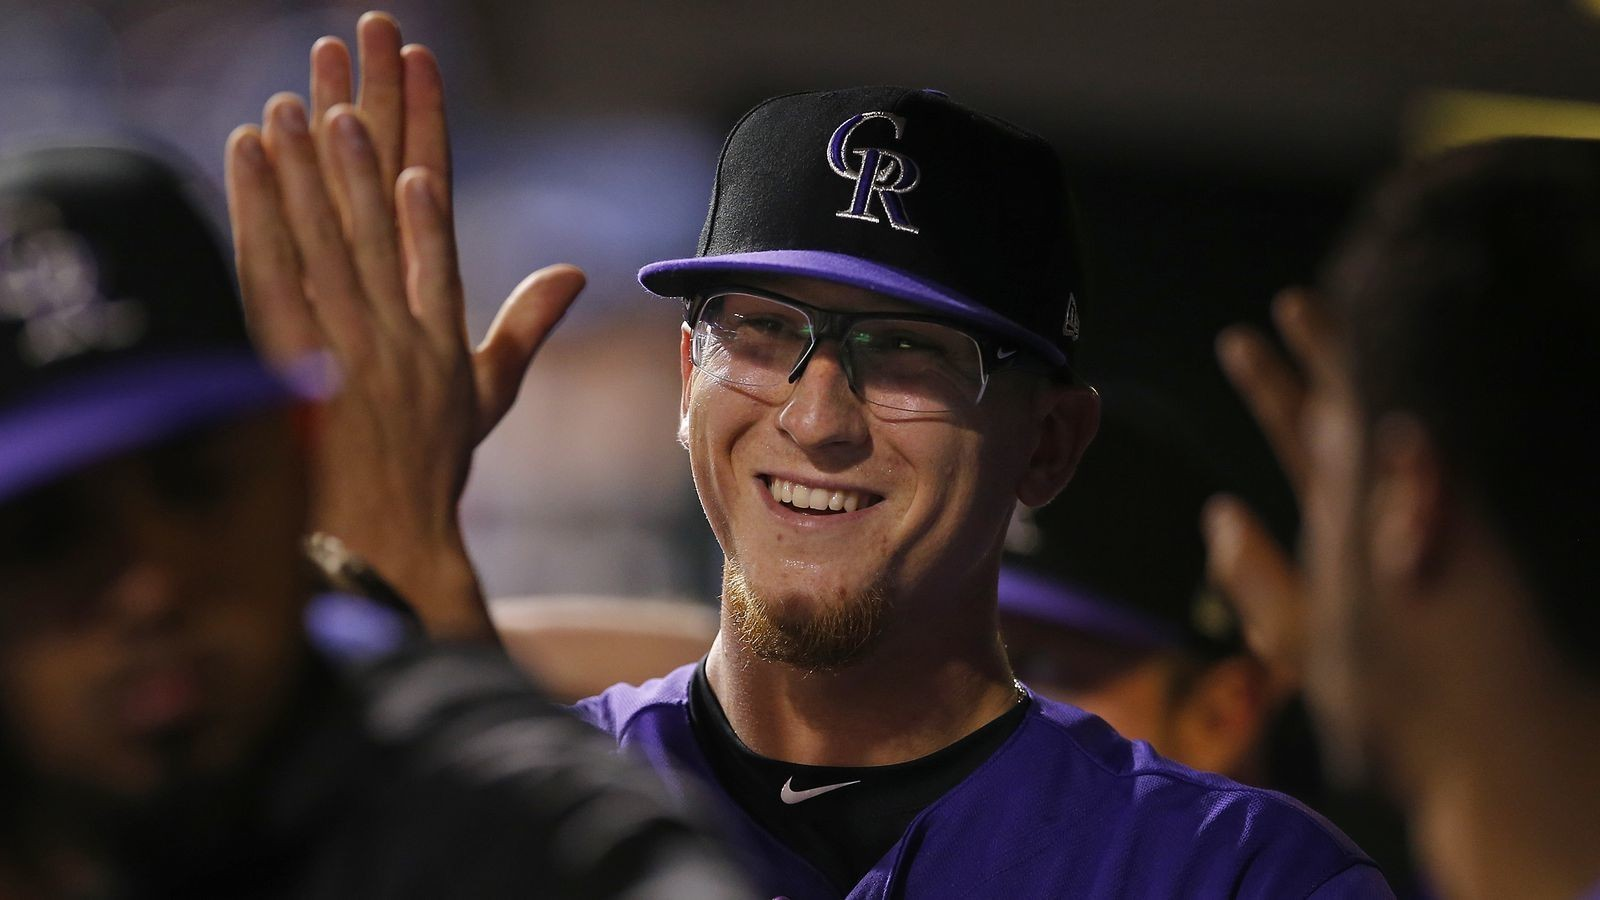 Rockies are real good and Jeff Hoffman is the real deal.